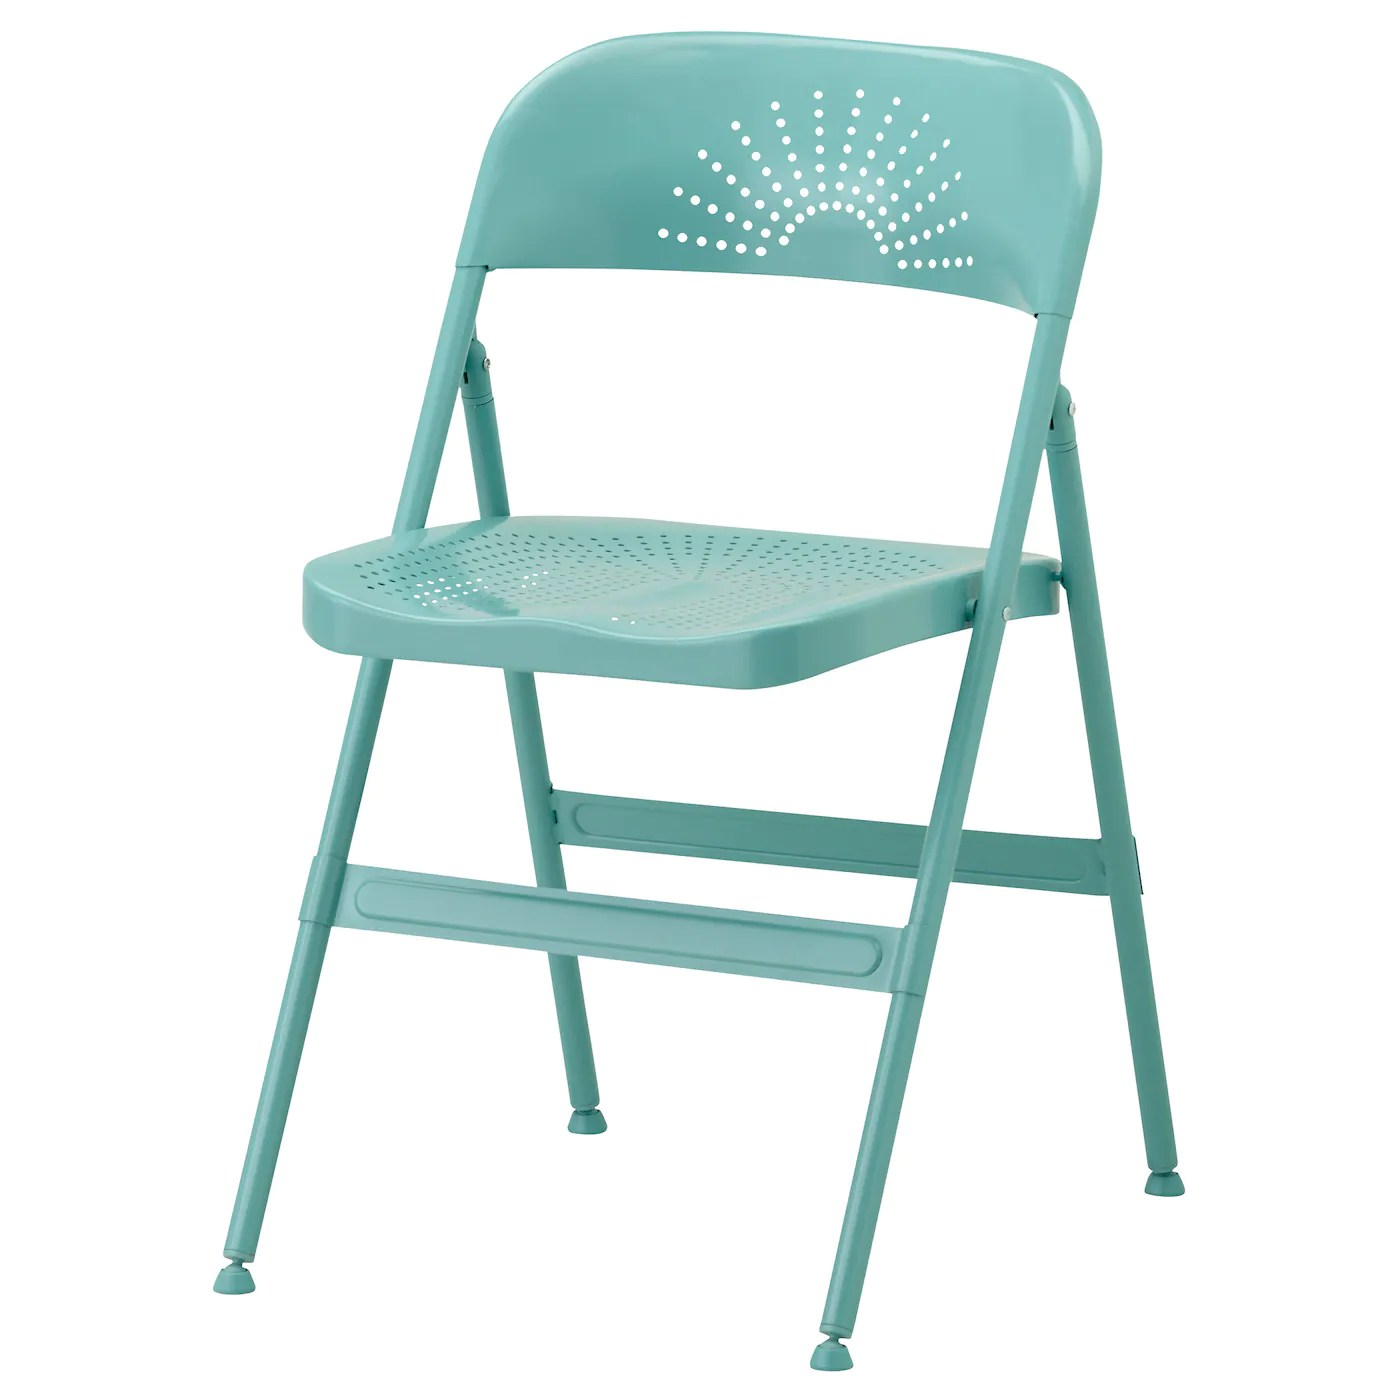 foldable chairs modern circle chair frode folding turquoise ikea